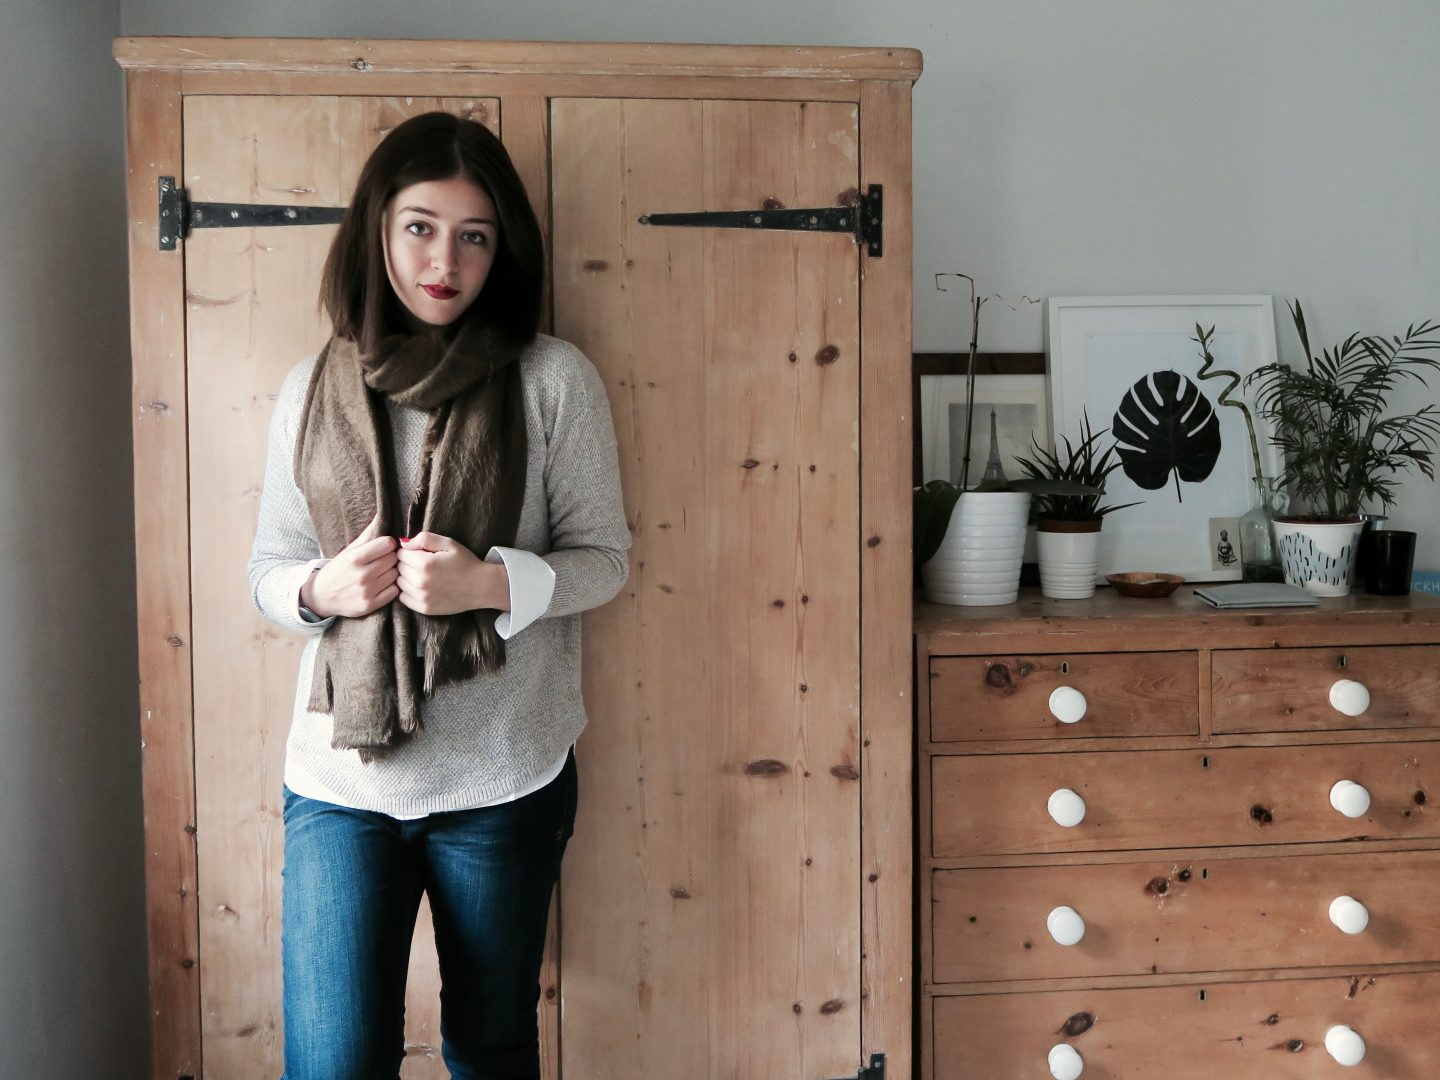 Harpenden-Jumper-Poppy-Brushed-Plain-Scarf-and-Everyday-Jeans-from-Fat-Face-1440x1080.jpg